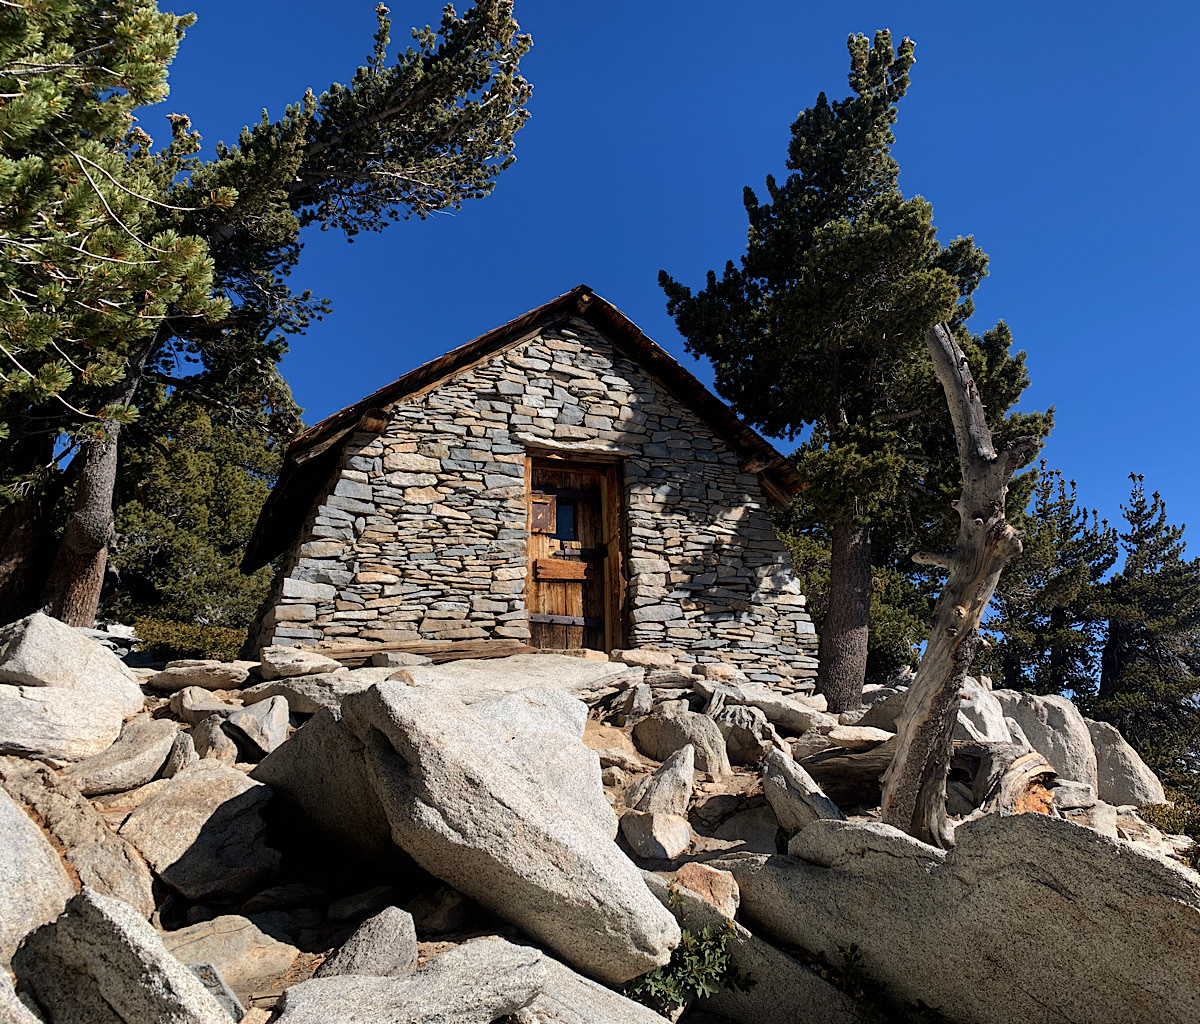 The beautiful CCC emergency hut near the summit of San Jacinto Peak.